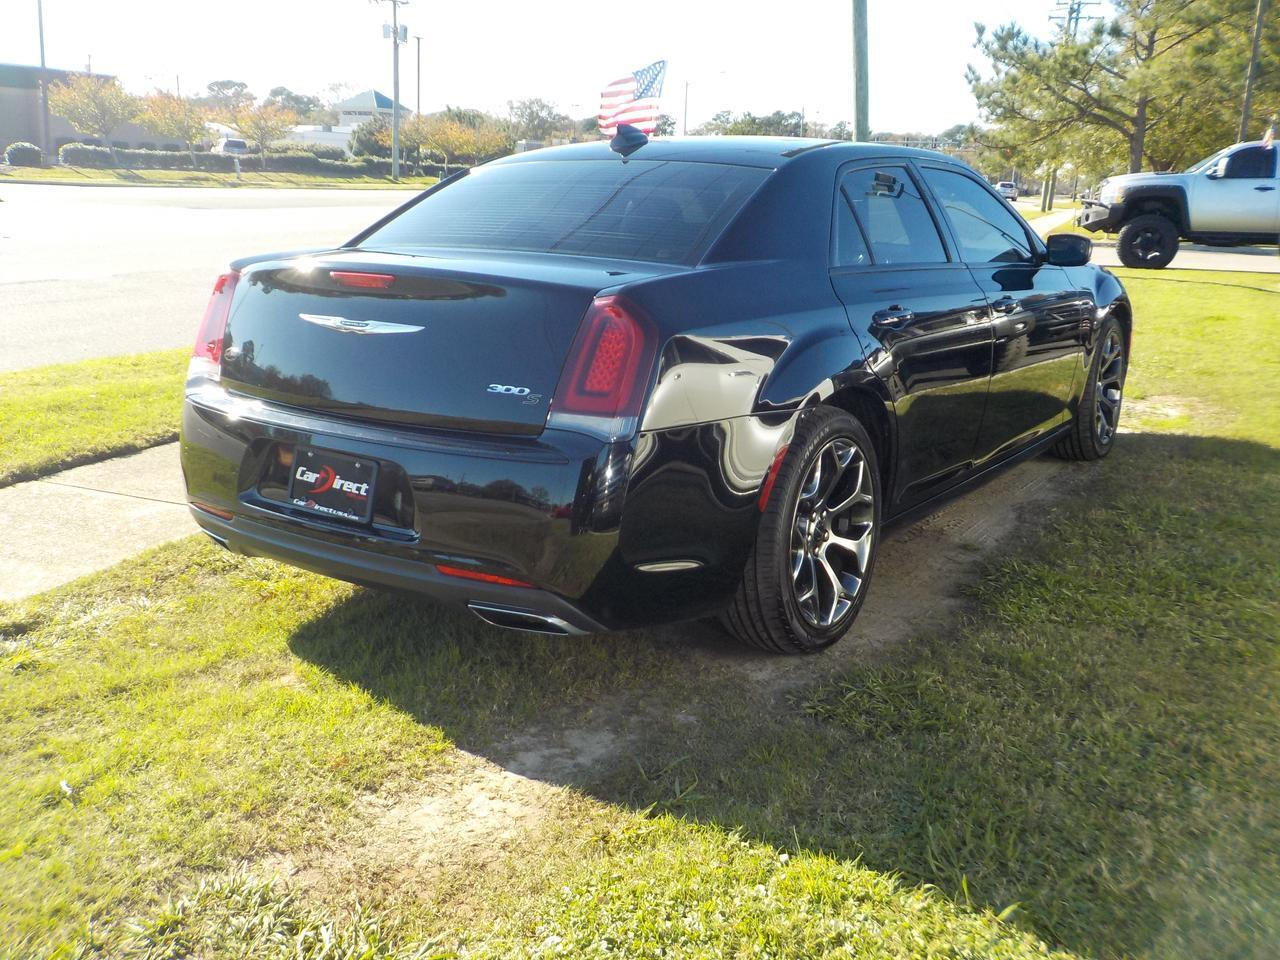 2016 CHRYSLER 300 S, LEATHER, HEATED SEATS, BACK UP CAM, NAVIGATION, BEATS SOUND SYSTEM, BLUETOOTH, ONLY 46K MILES! Virginia Beach VA